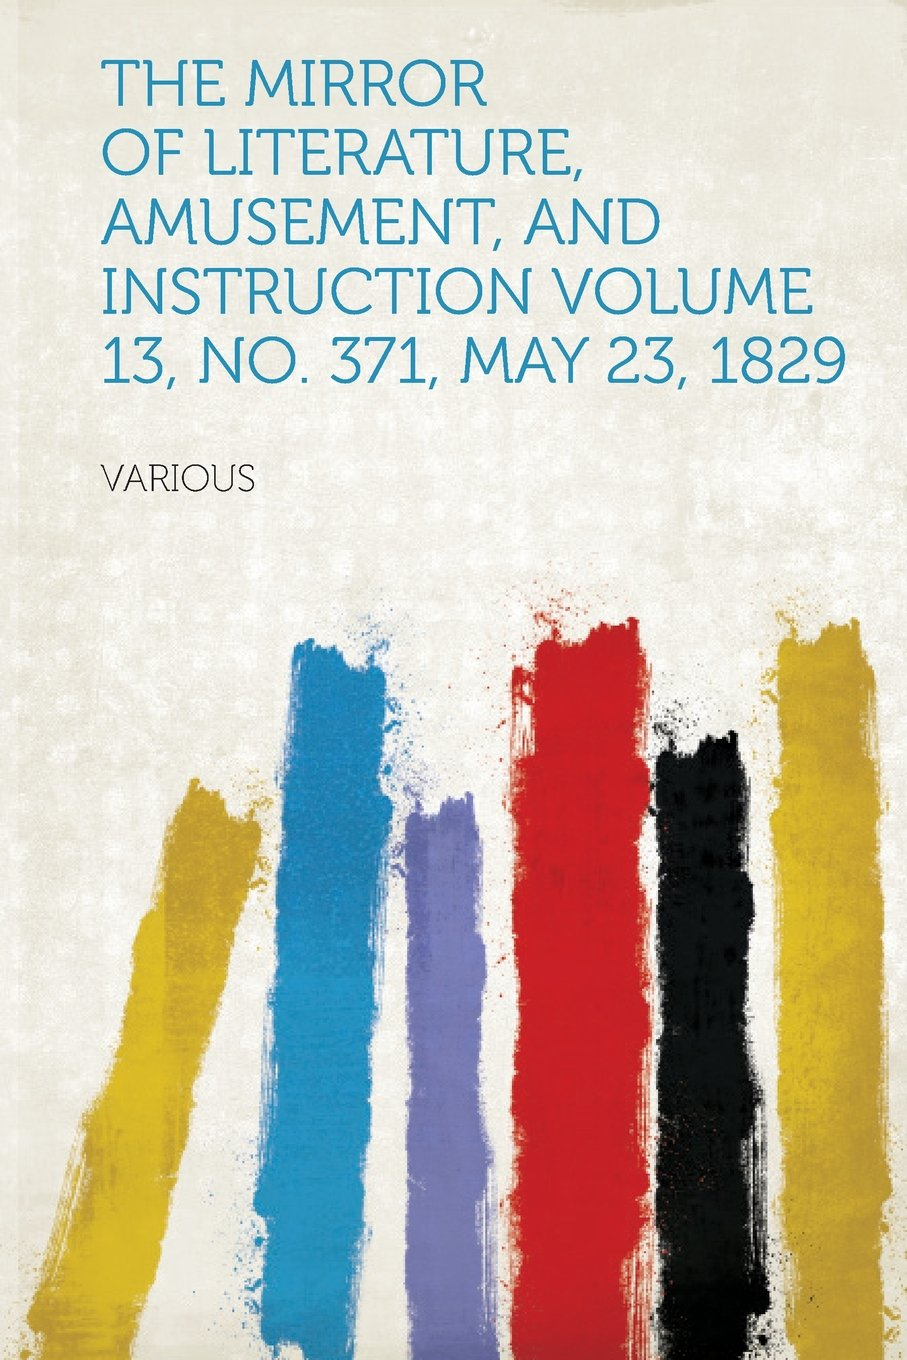 The Mirror of Literature, Amusement, and Instruction Volume 13, No. 371, May 23, 1829 PDF